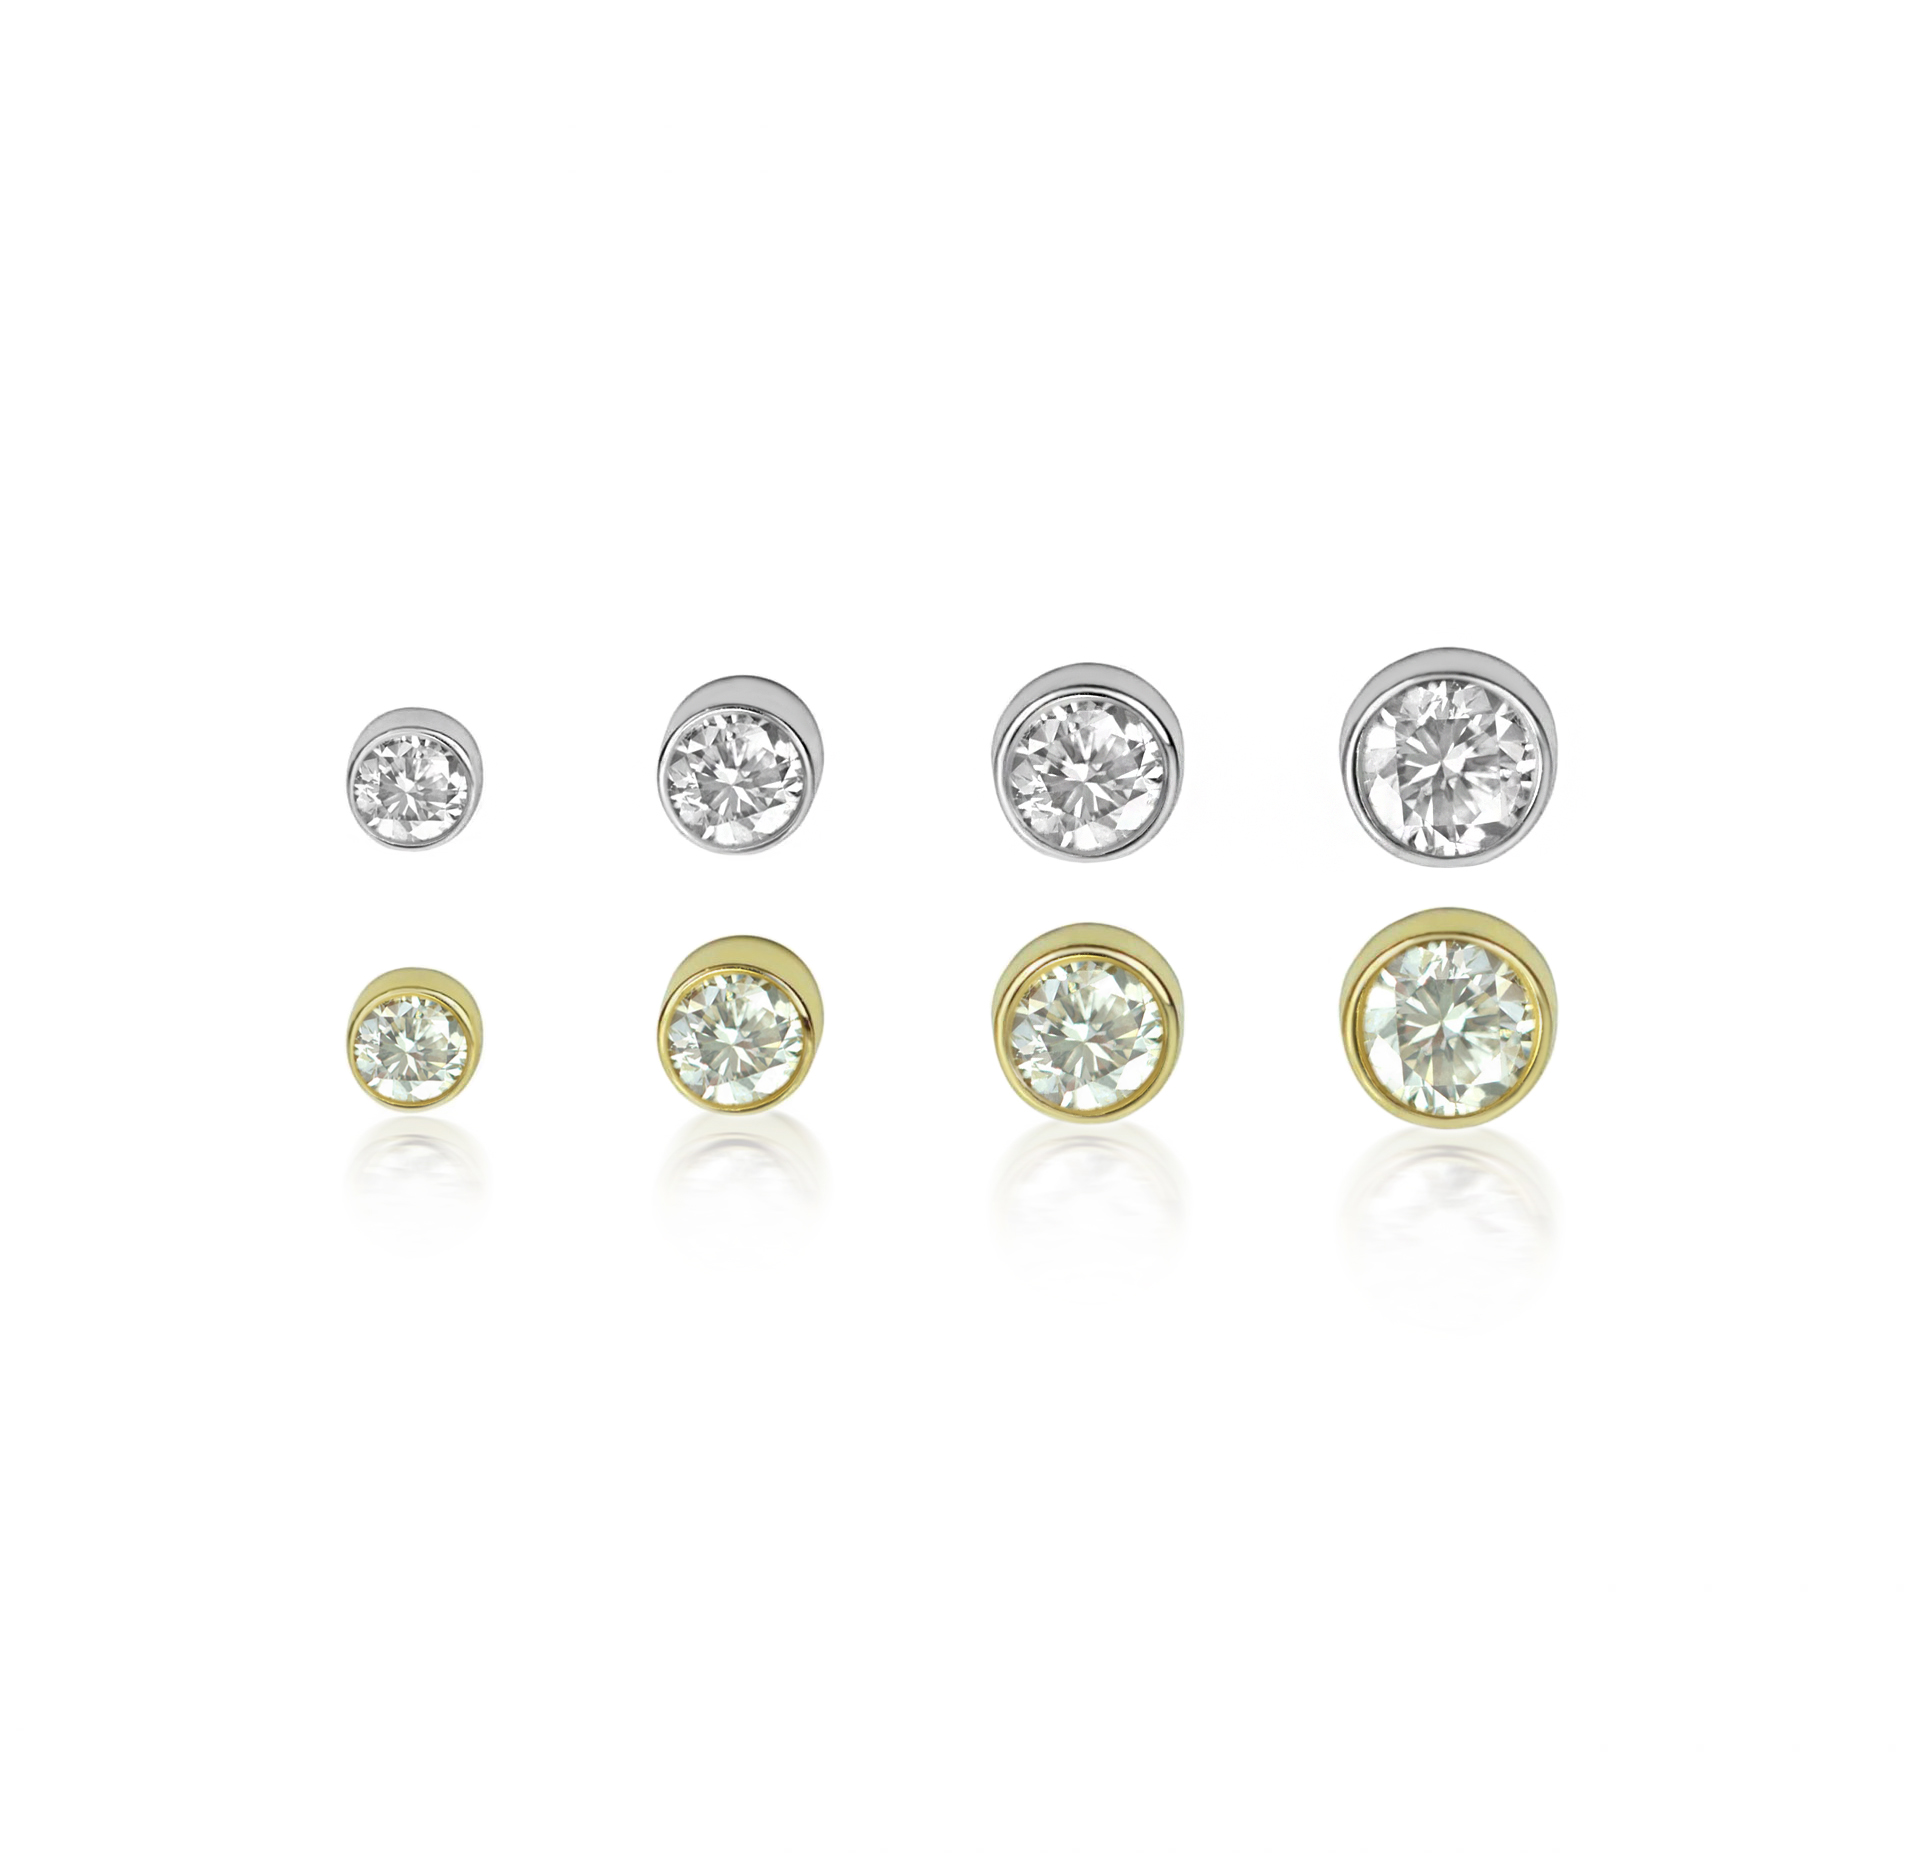 single-diamond-piercing-studs-screw-backs-gold-buy-online-lena-cohen-uk-3